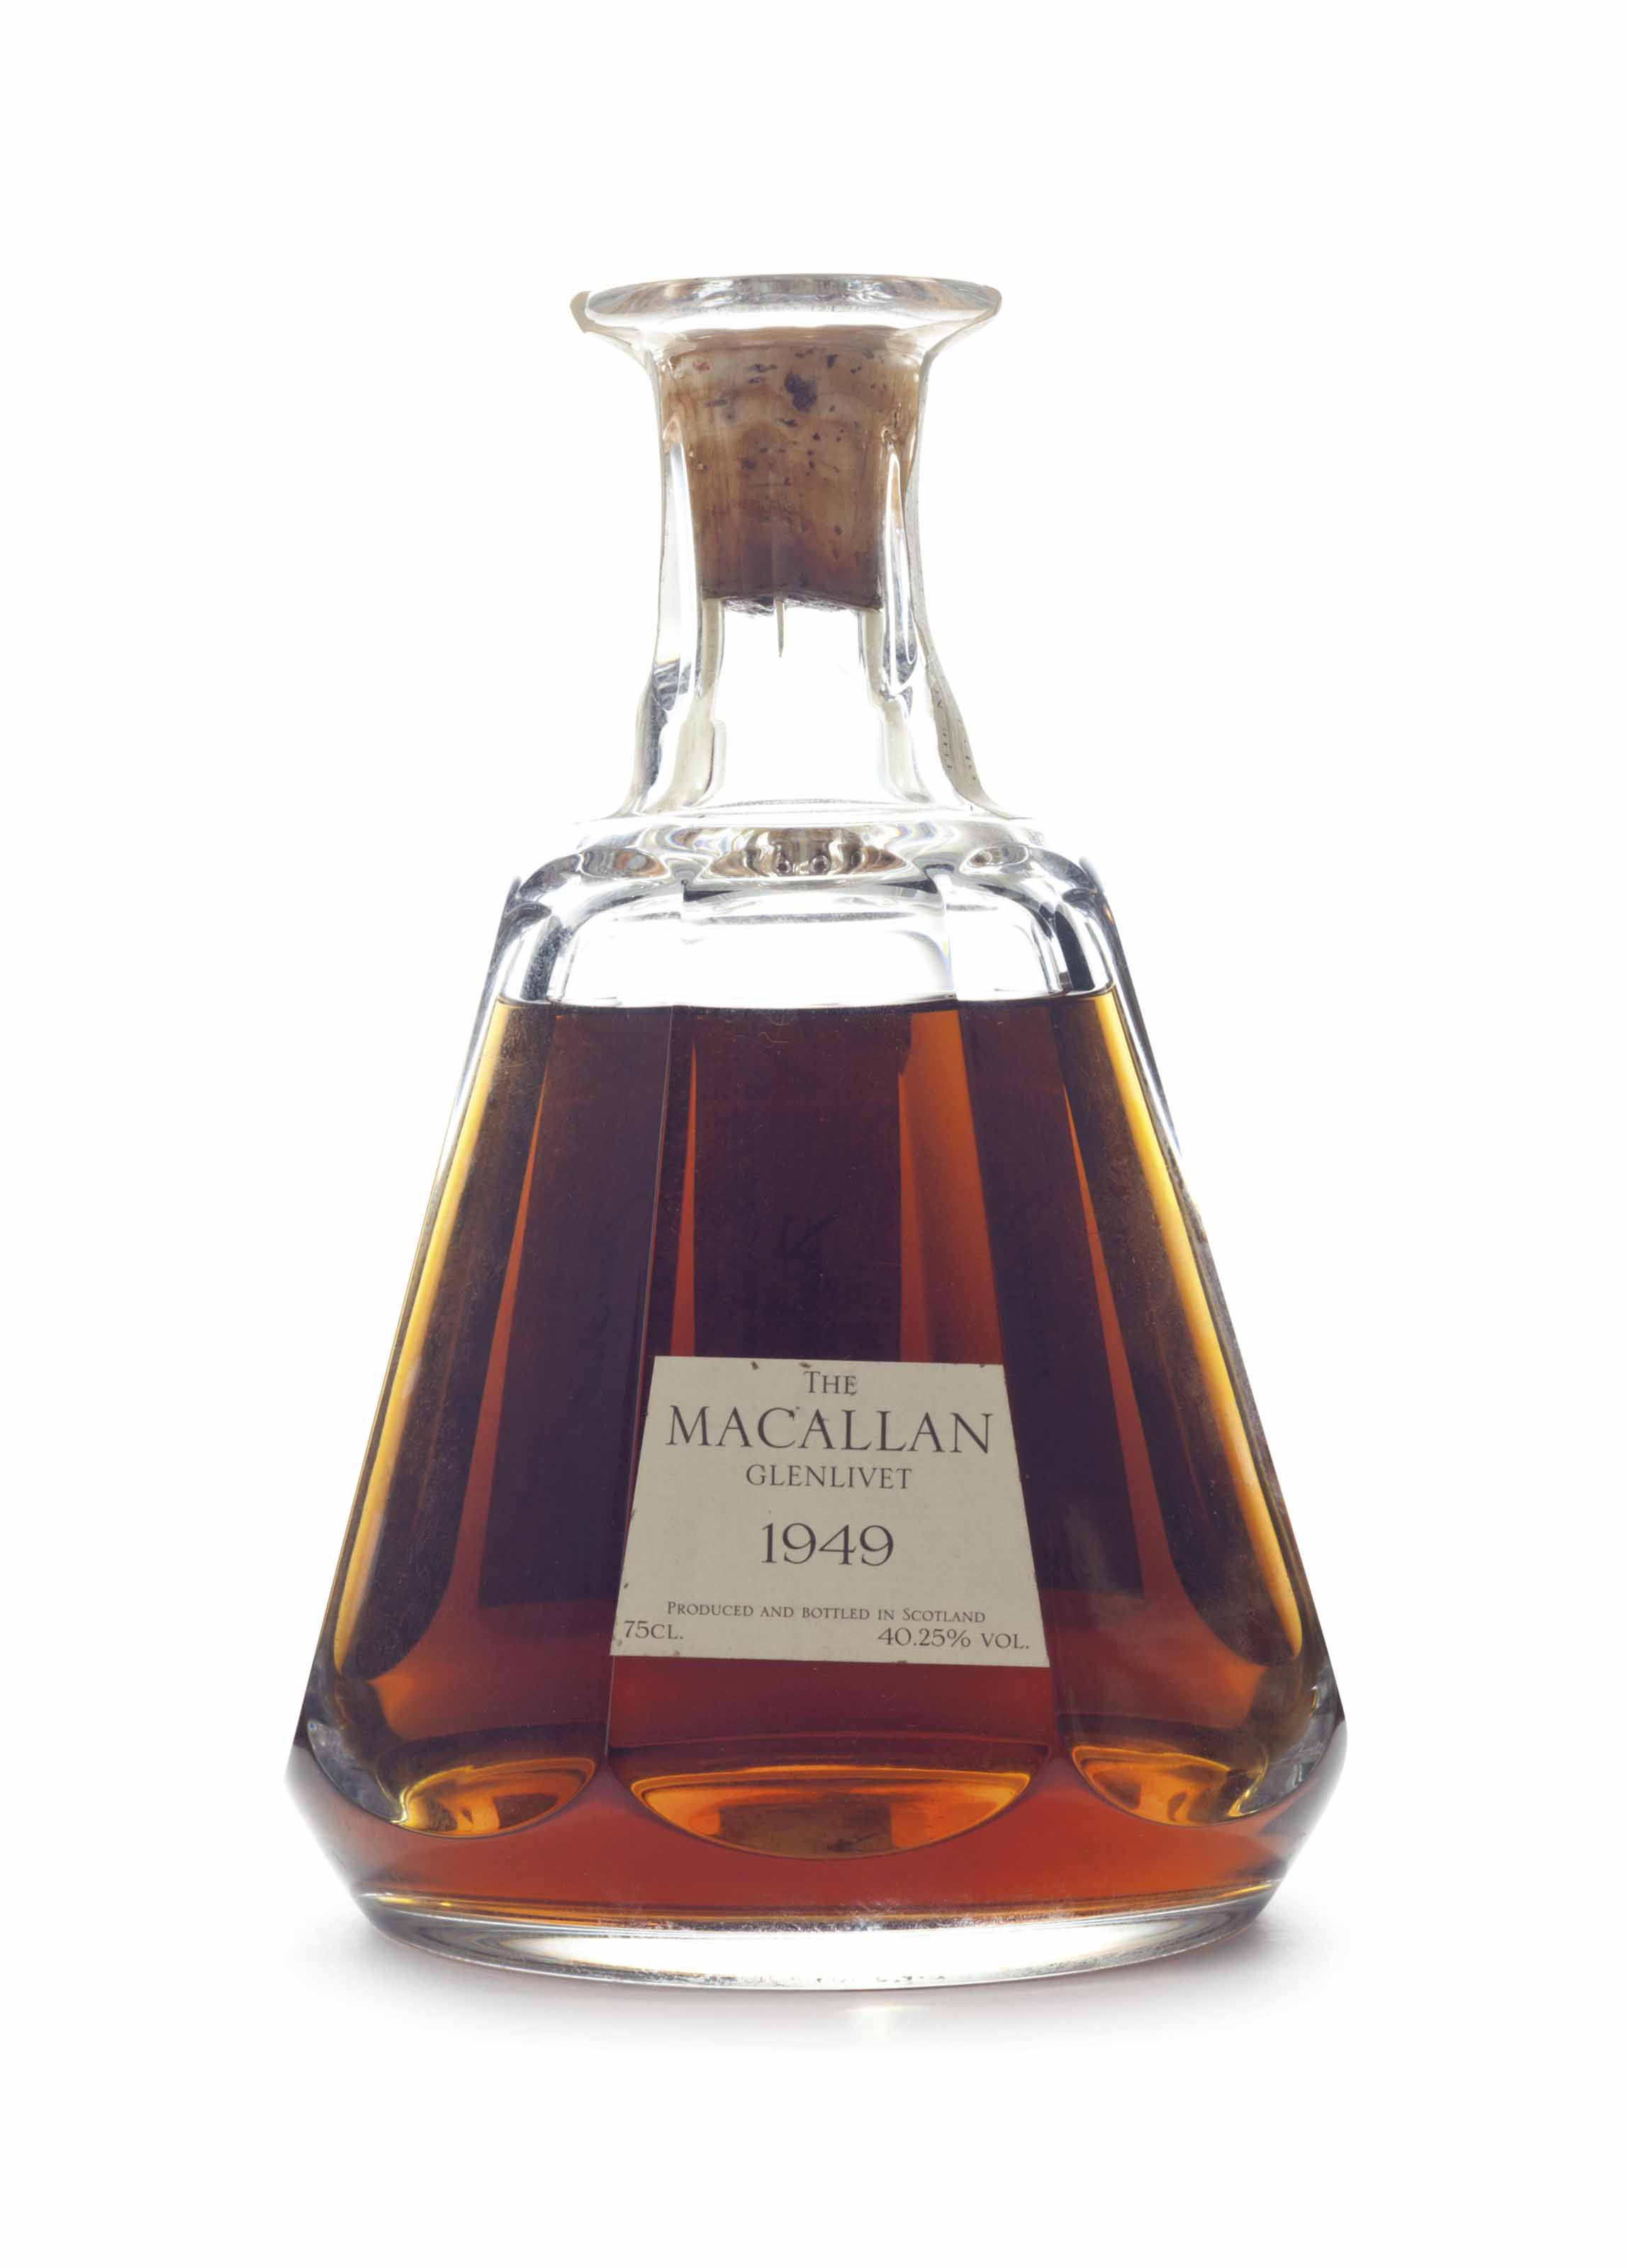 The Macallan 1949